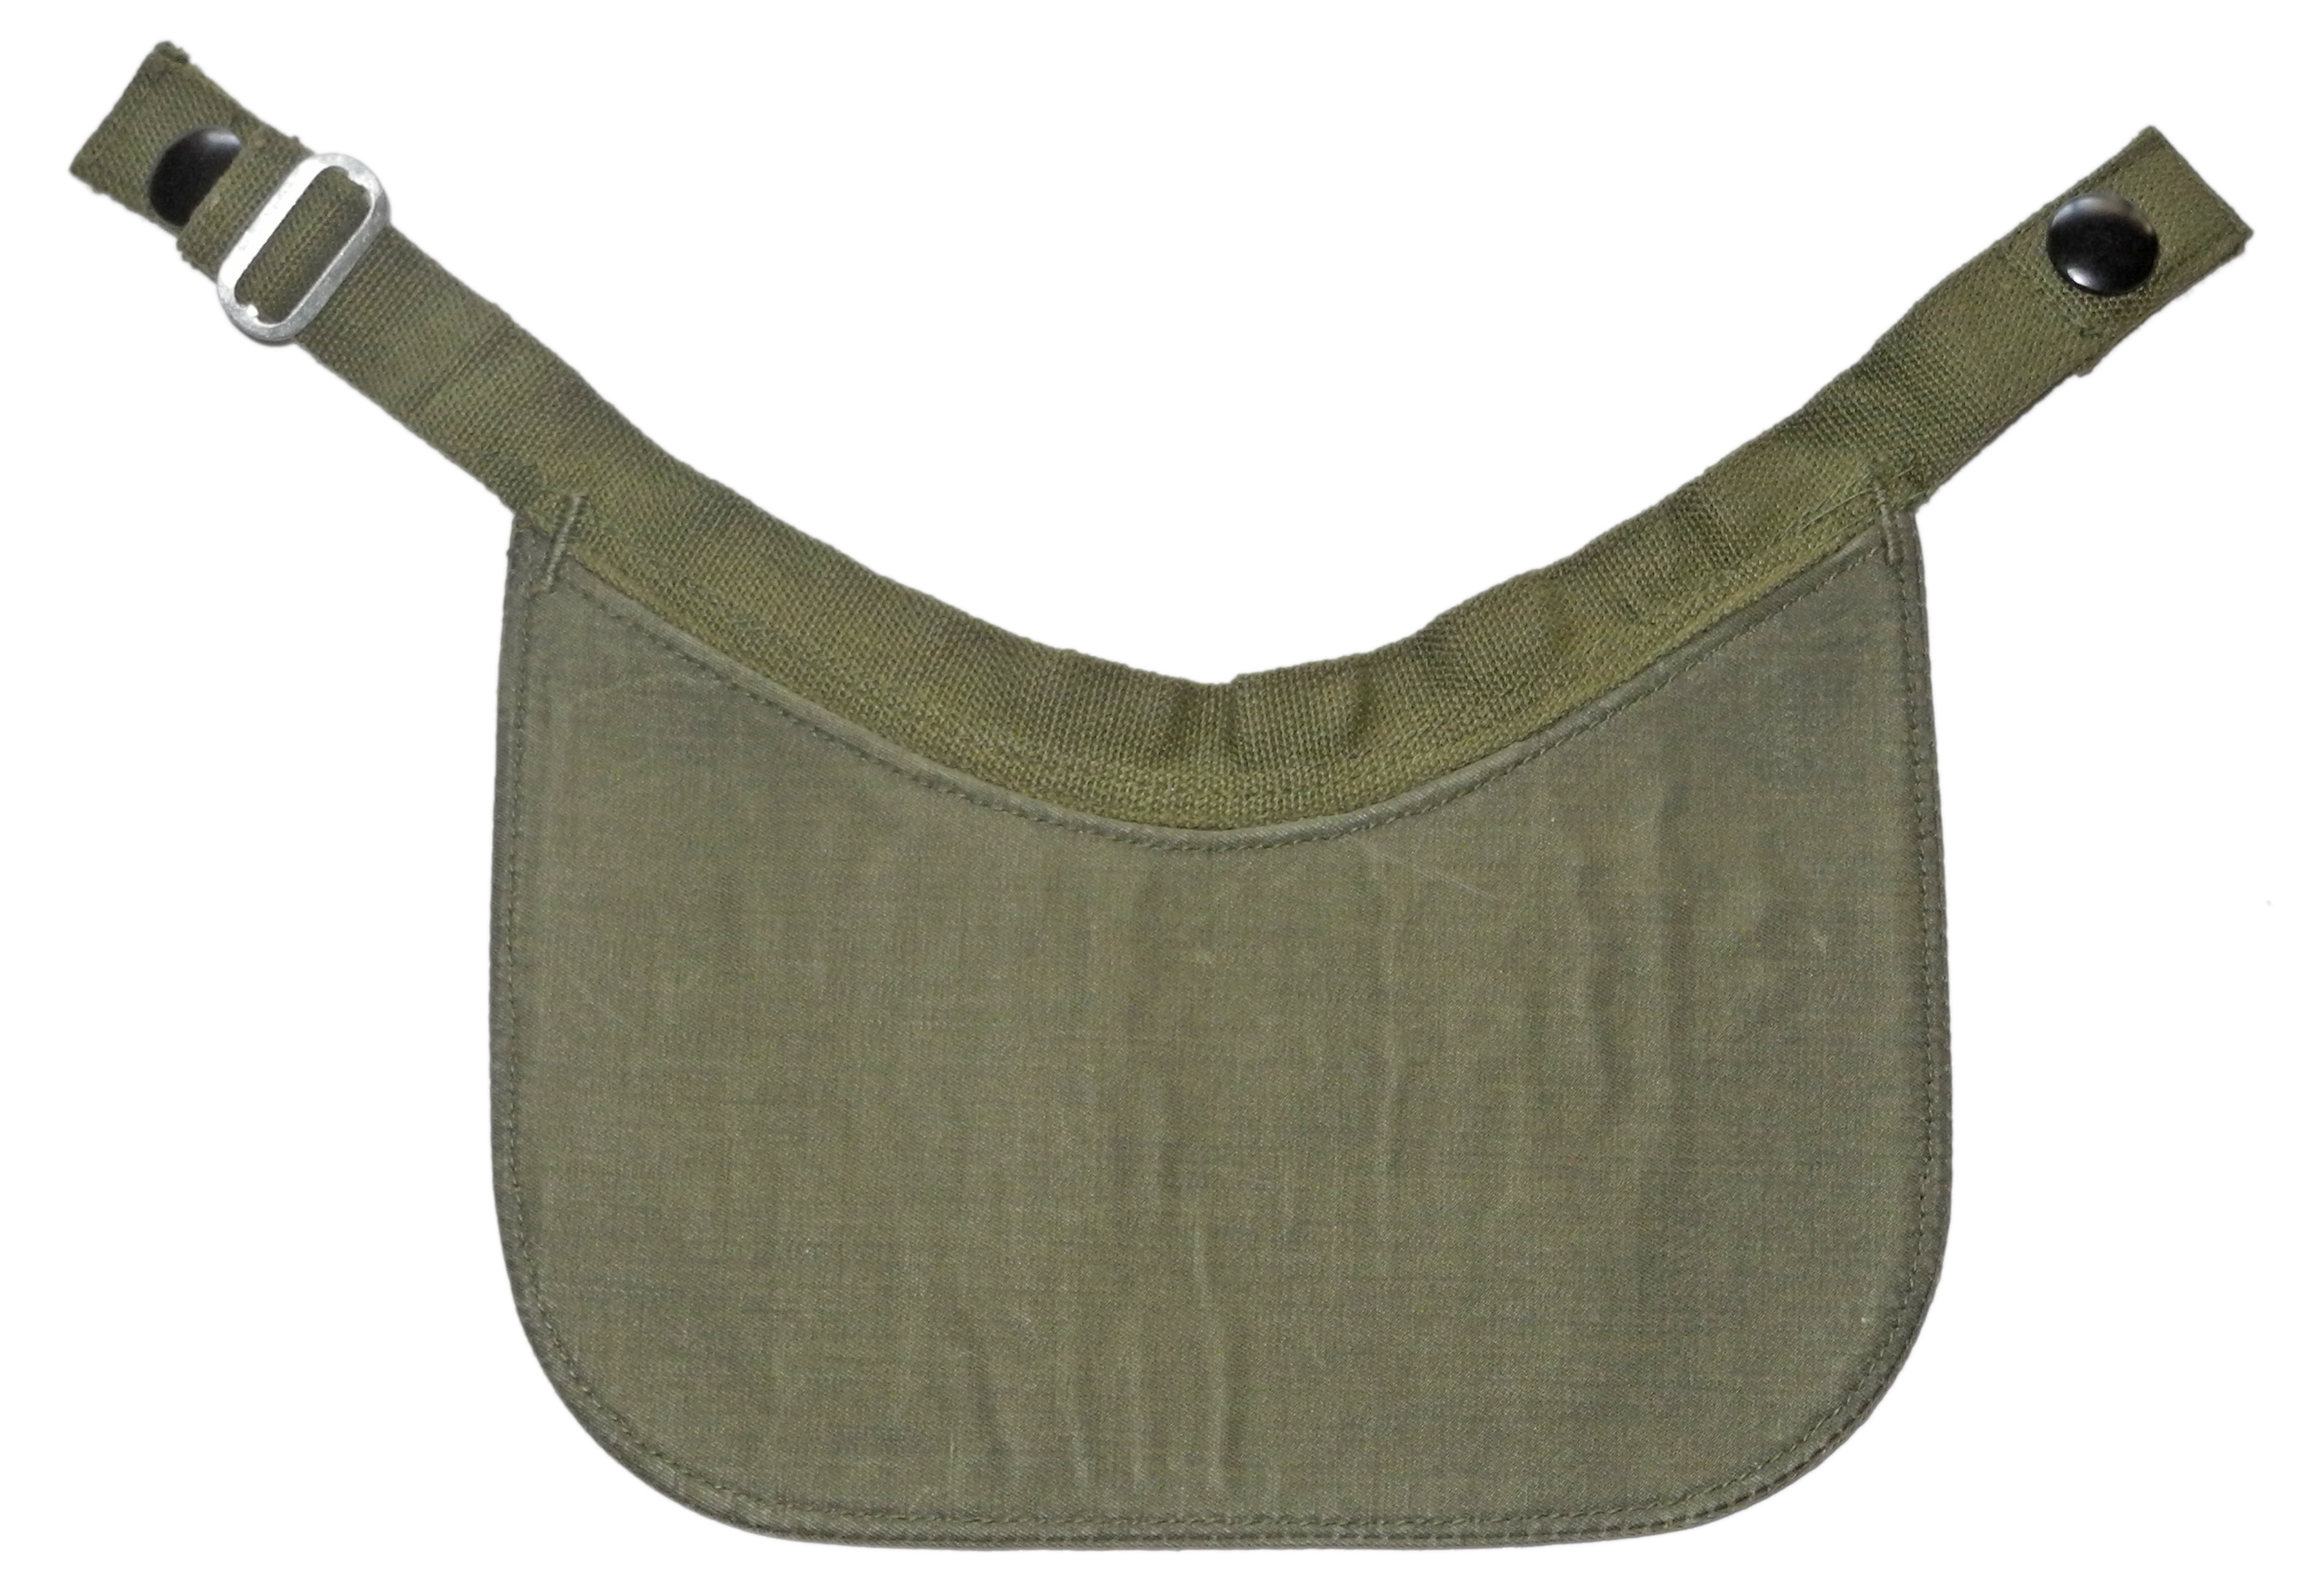 AAF Type A-1 snap on visor